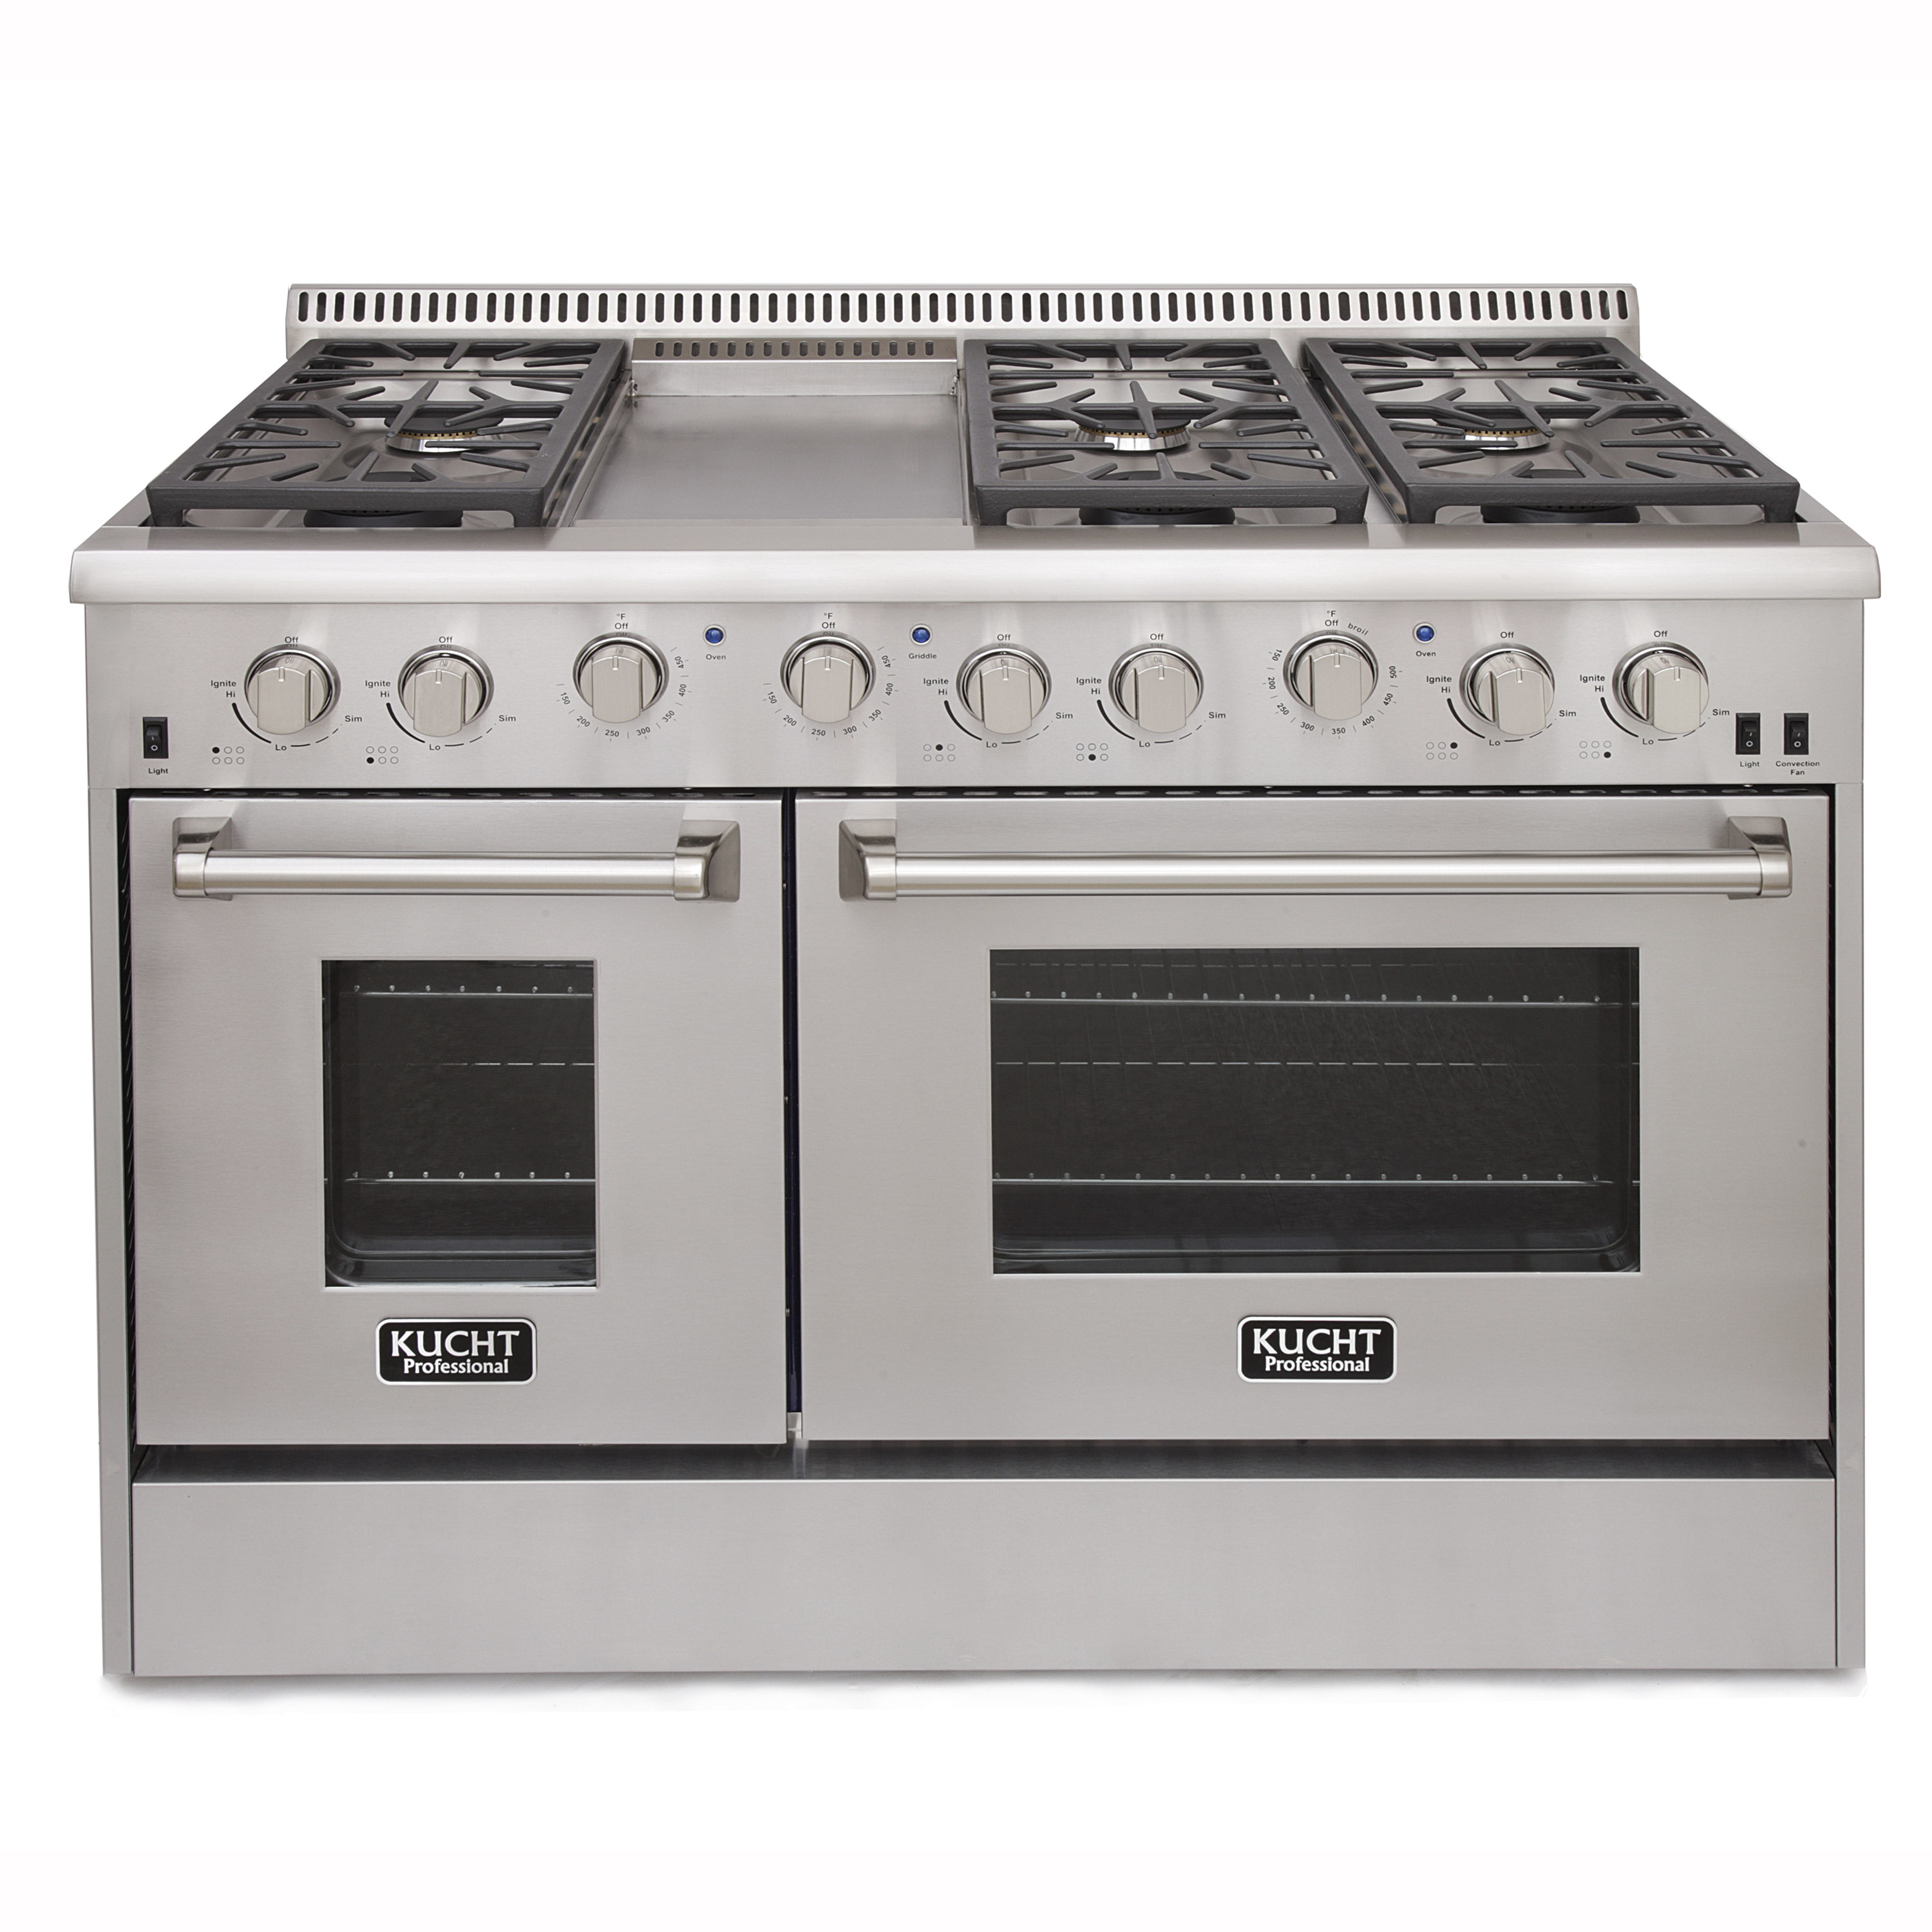 KUCHT Professional 48 in. 6.7 cu. ft. LP Gas Range with Sealed Burners, Griddle and Convection Oven in Stainless Steel